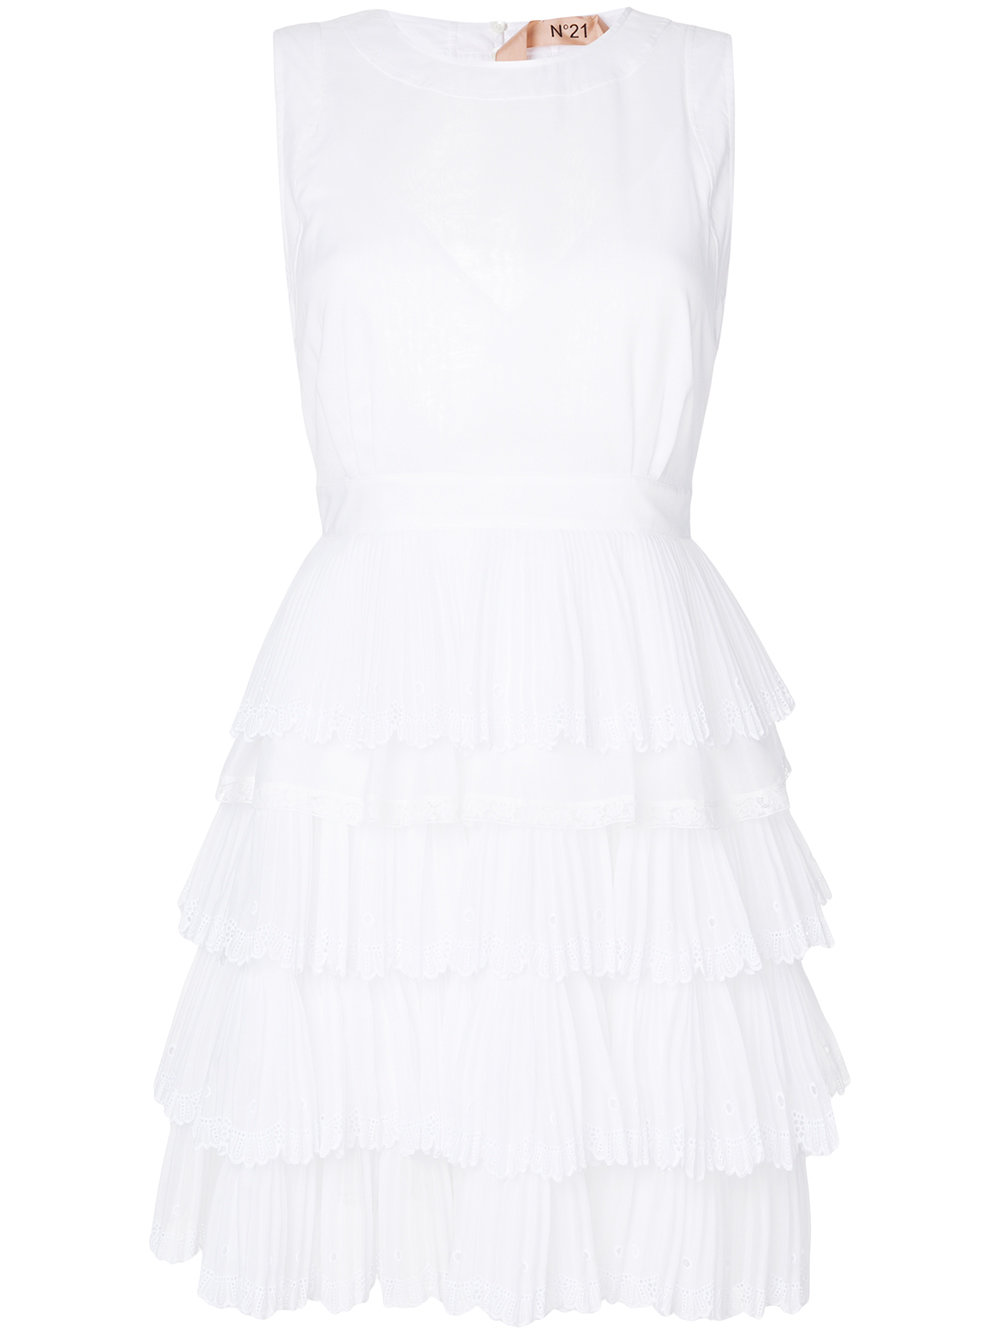 N21 ruffle detail dress